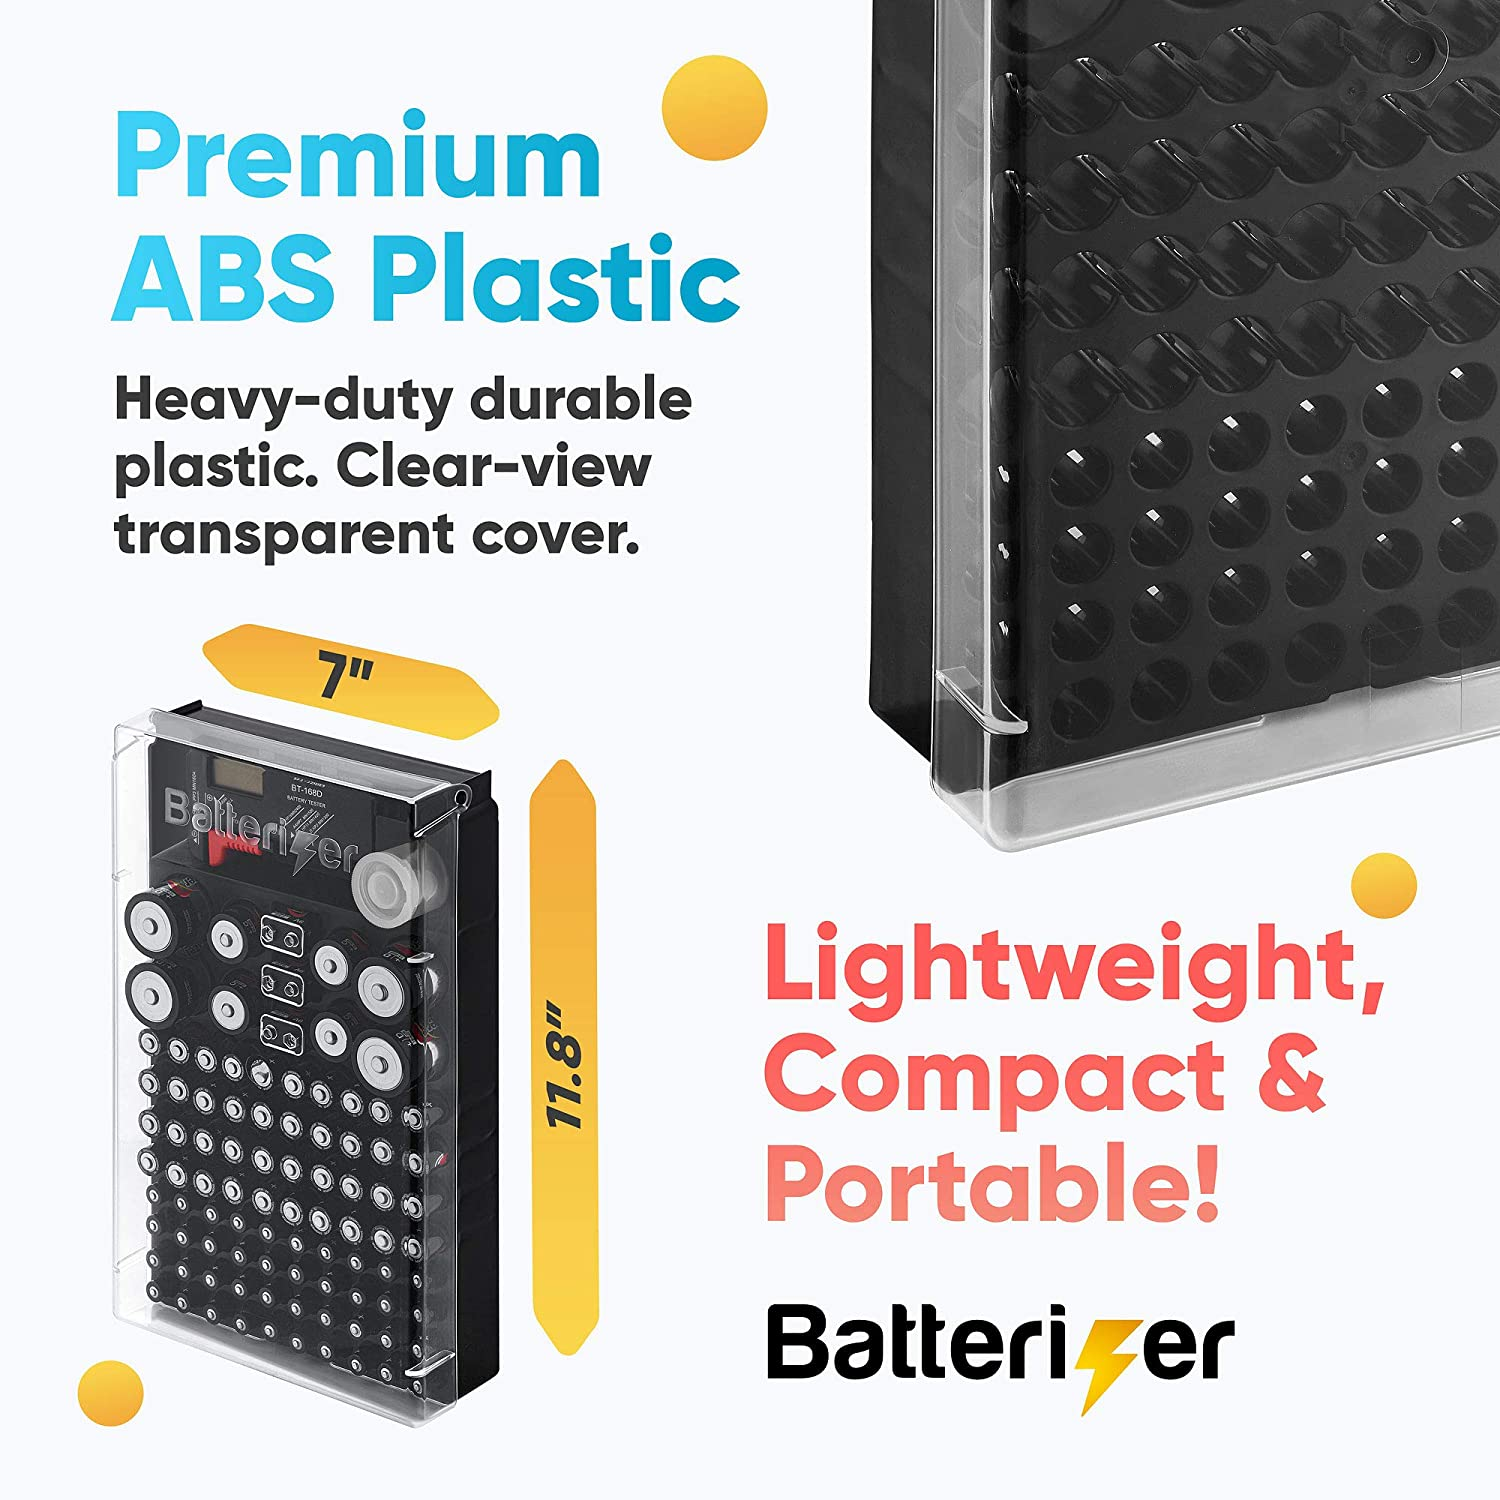 Compact Battery Storage Case with Clear Plastic Lid Holds Over 92 Assorted Batteries Battery Organizer Storage Case with Tester Keeps Batteries Organized by Batterizer V2 7/'X11.8/' Battery Case